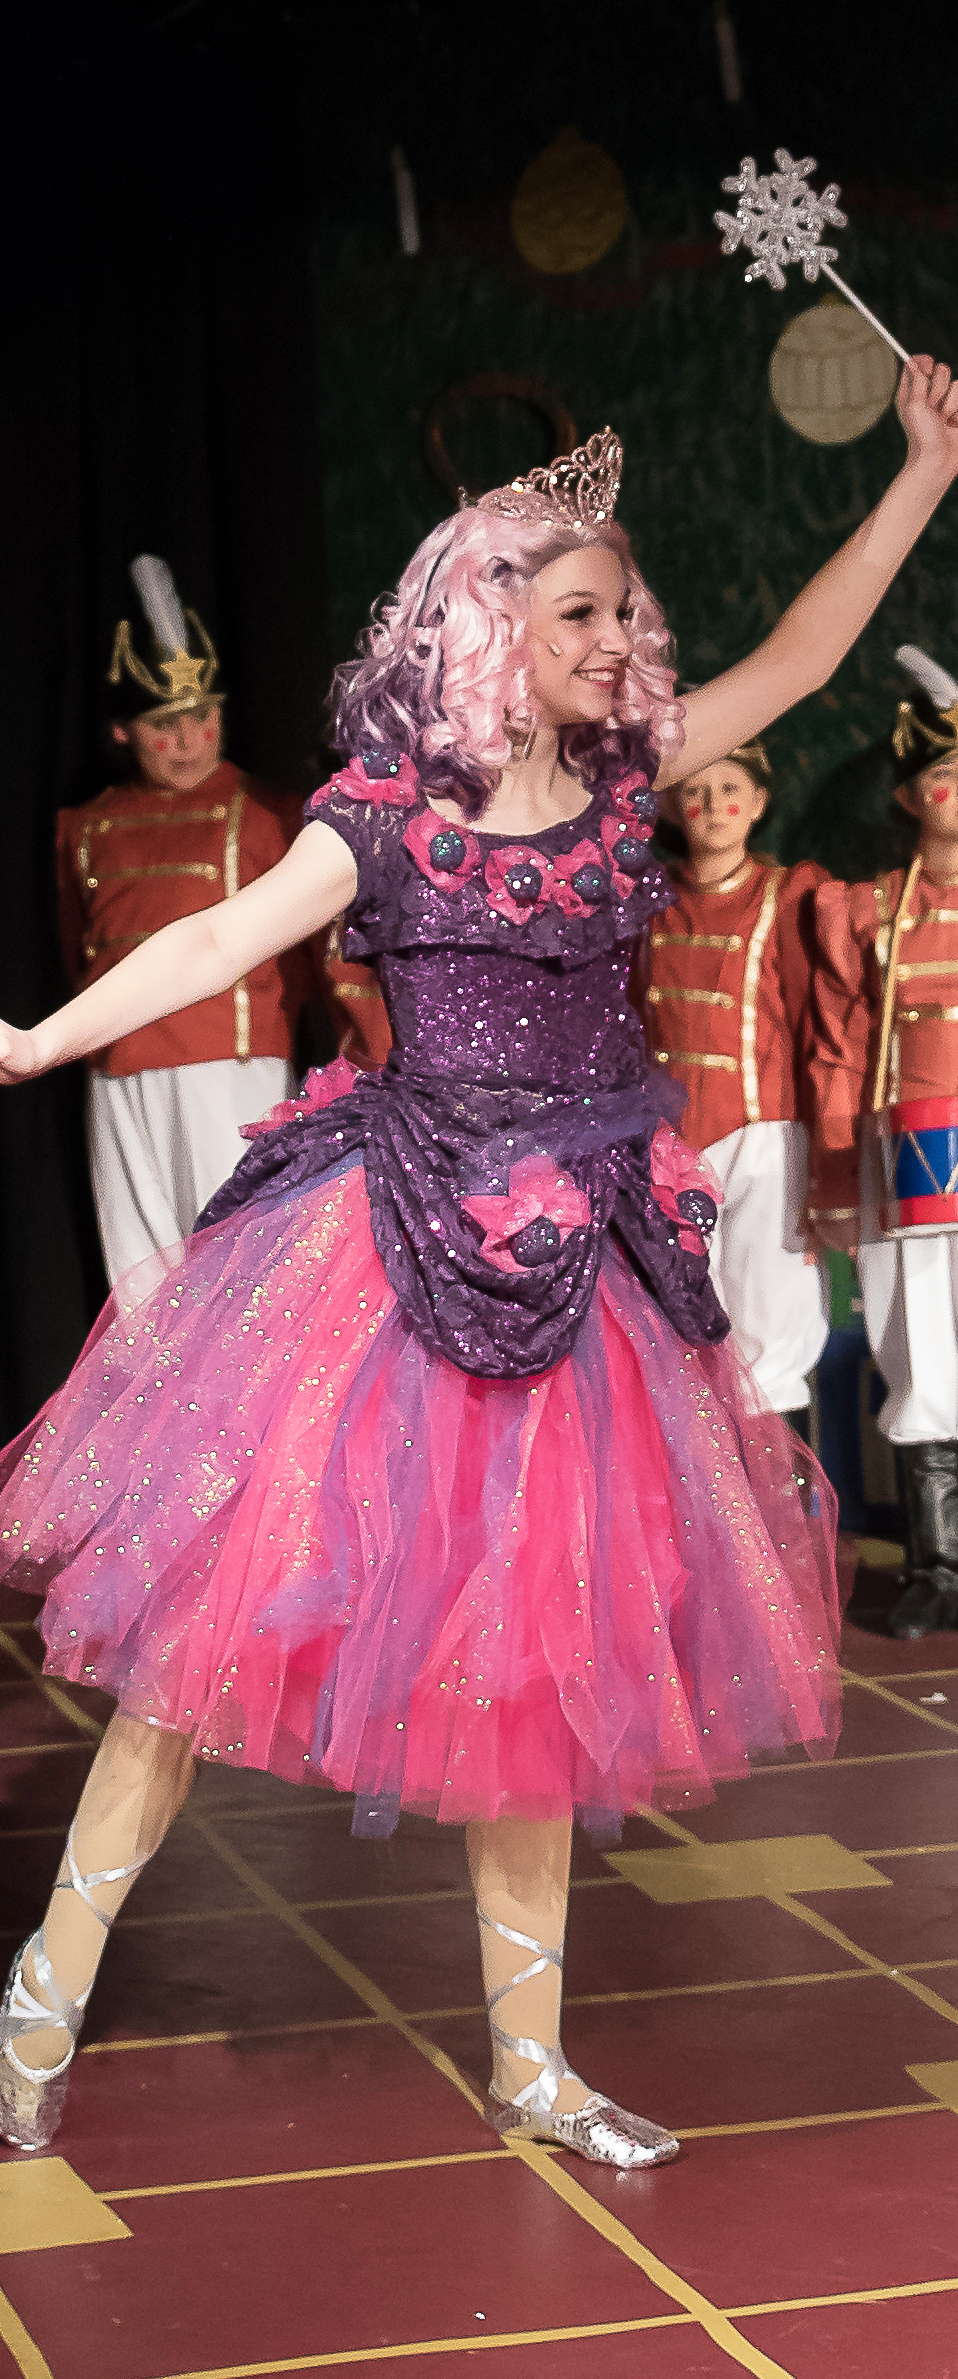 Nutcracker-0382 copy.jpg